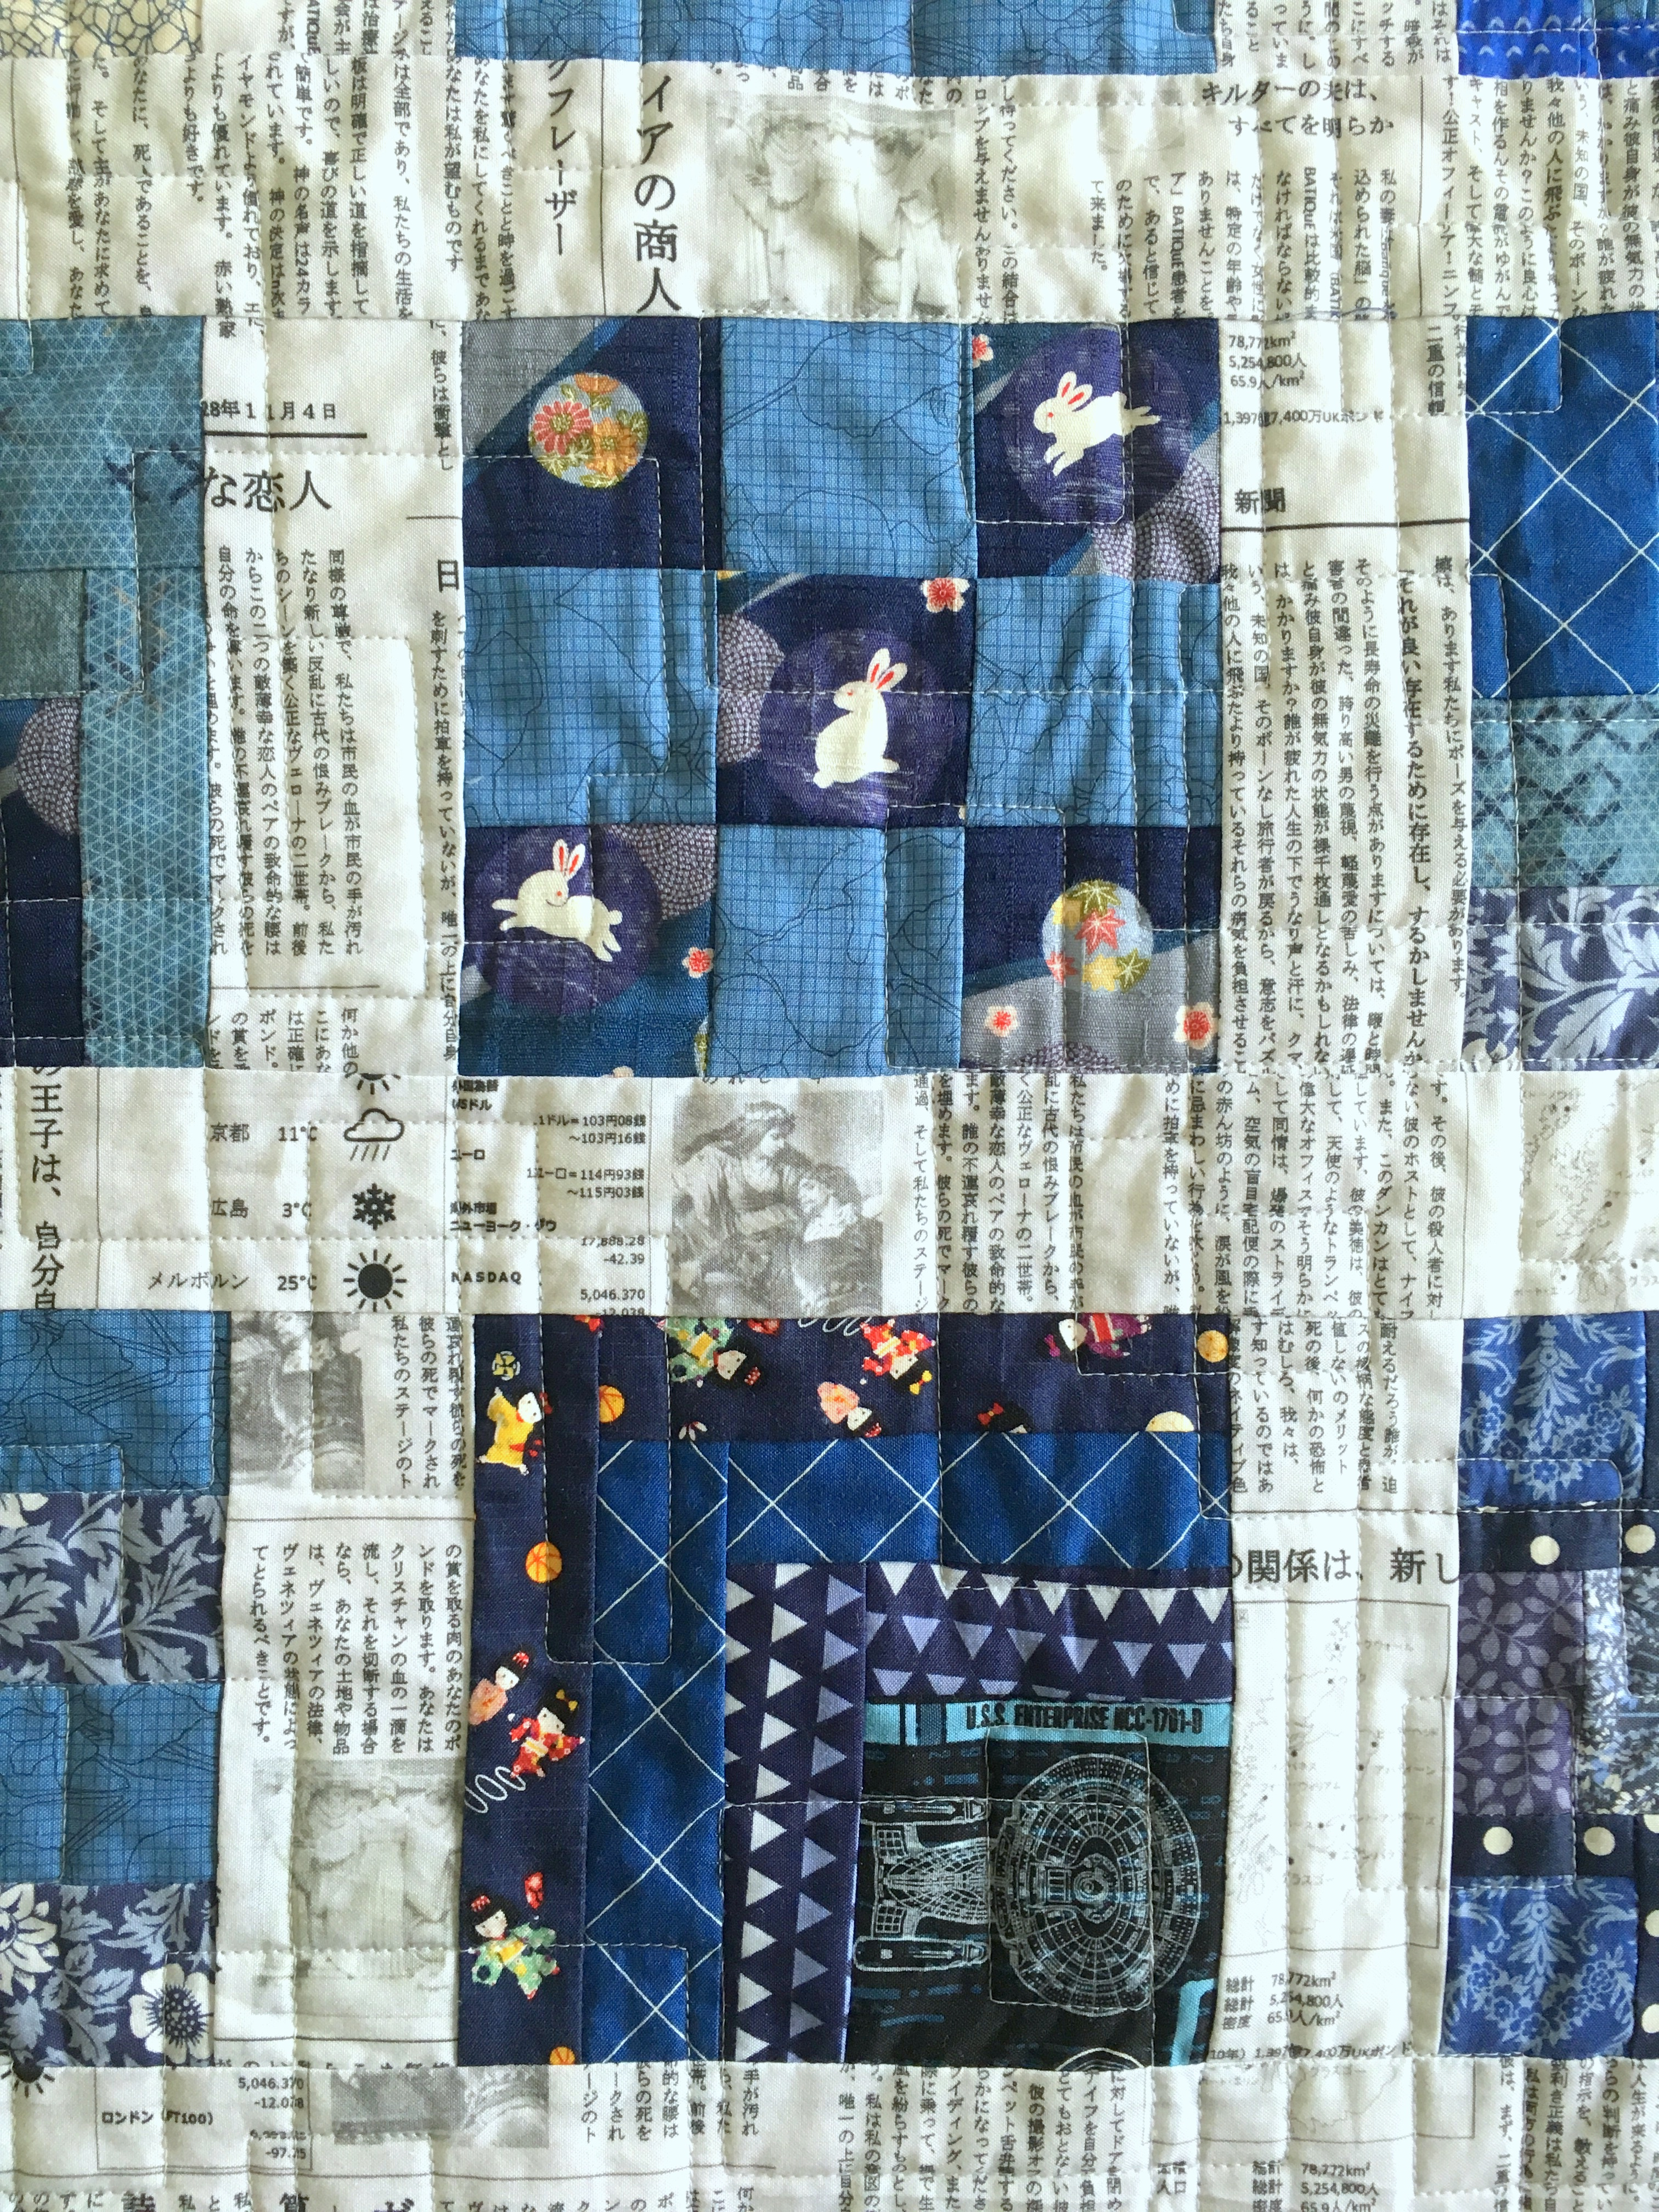 rafflequilt quilt guild s b raffle quilts quilter smith chelmsford cqg